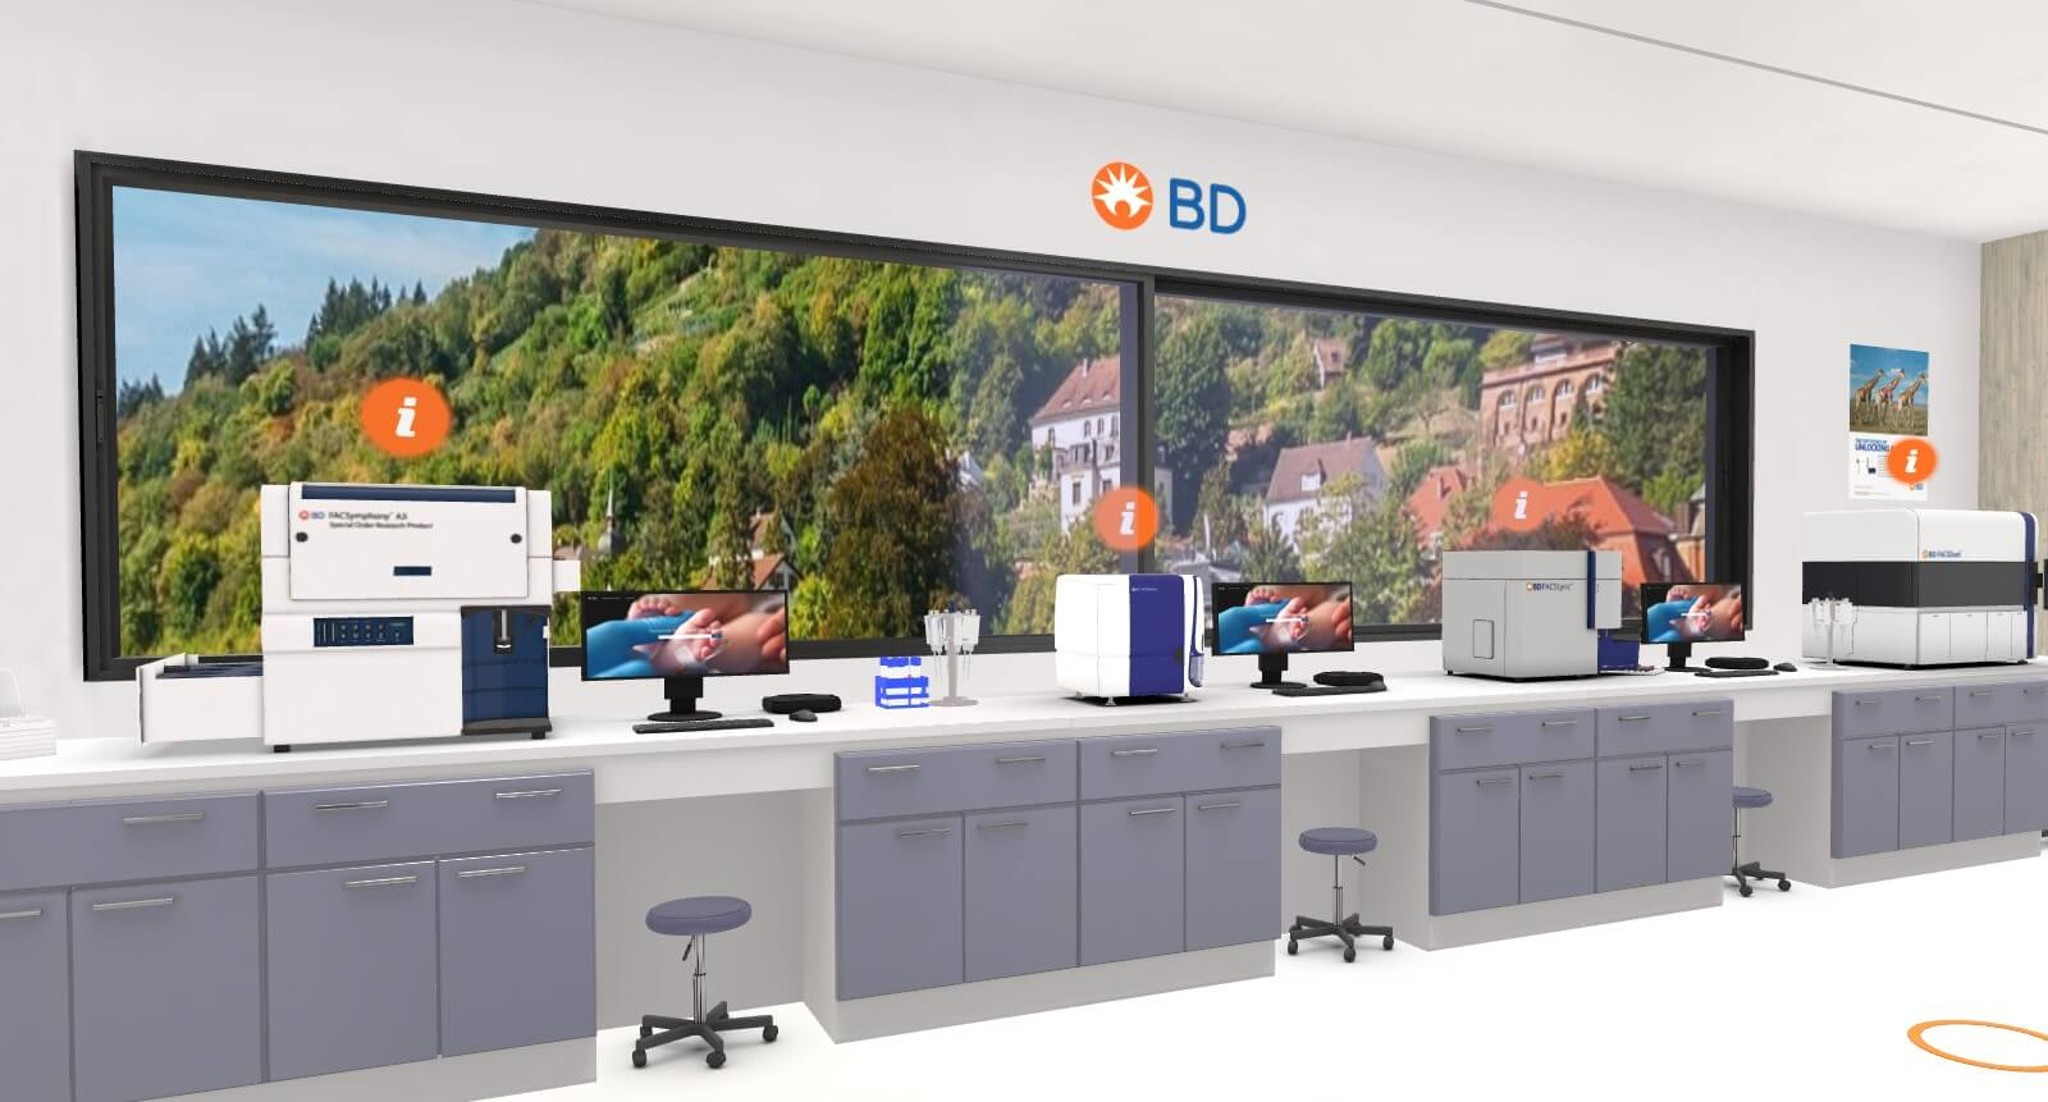 View into the virtual showroom of Becton Dickinson